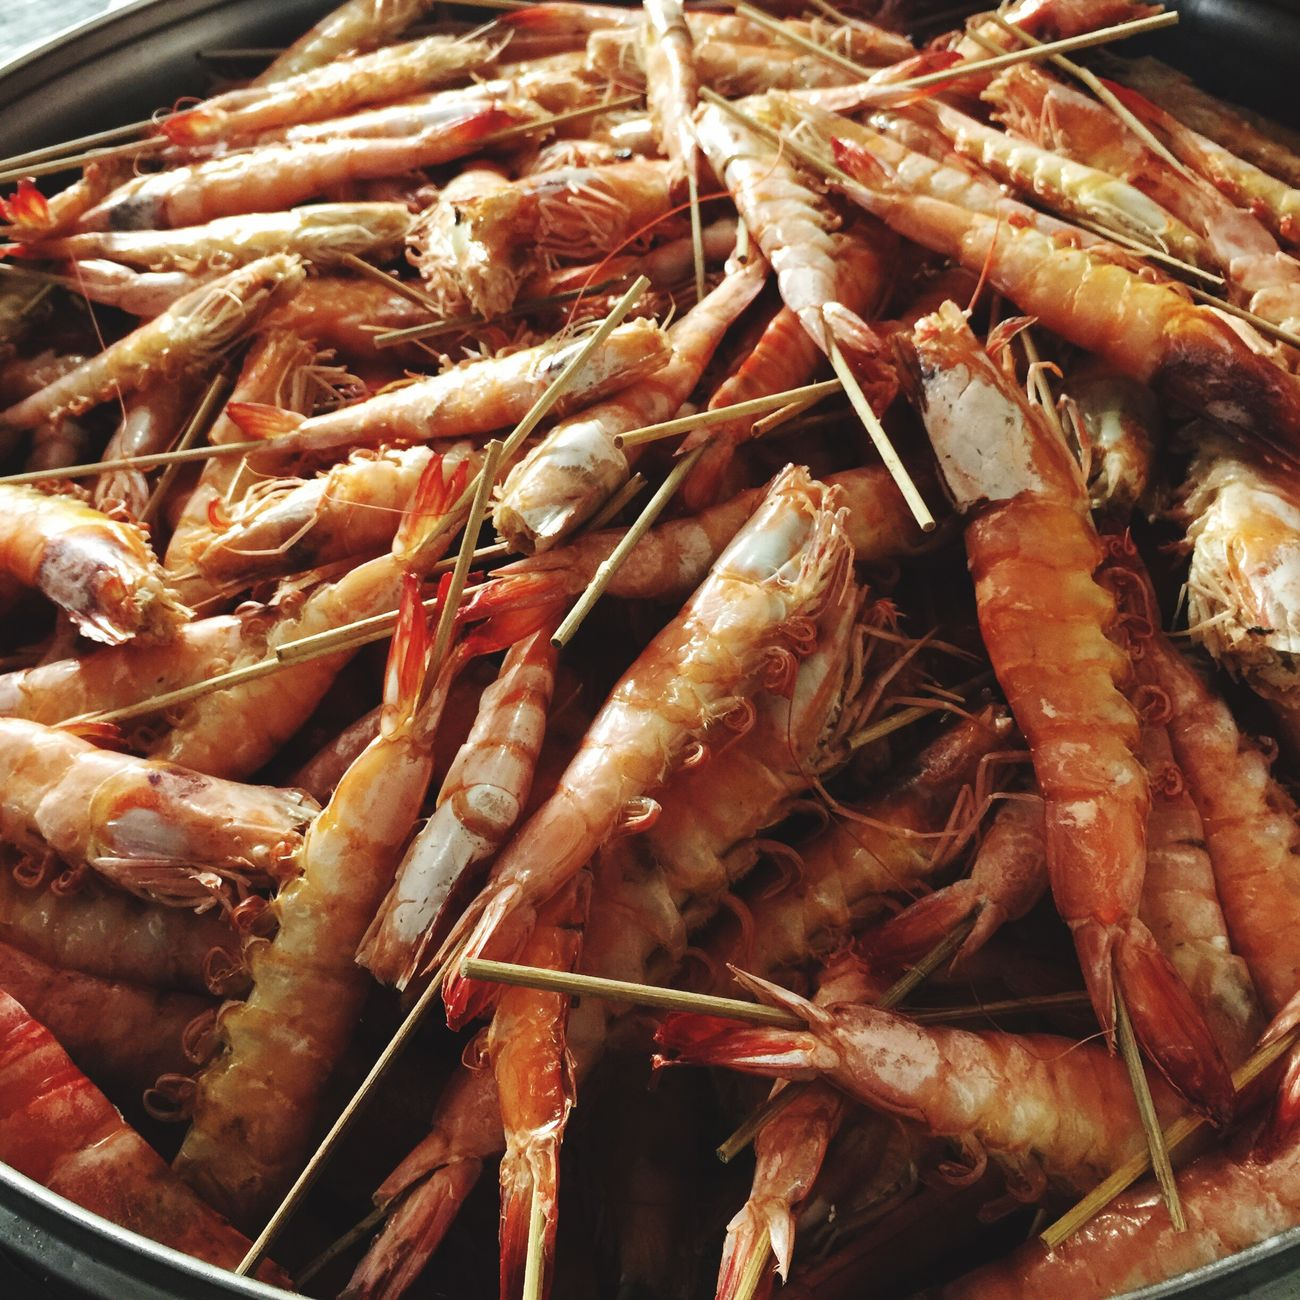 Seafood Food And Drink Food Freshness Abundance Healthy Eating Retail  Market Market Stall For Sale Raw Food Large Group Of Objects Close-up Sale Fish Market Choice No People Indoors  Shrimp Day BEIJING北京CHINA中国BEAUTY